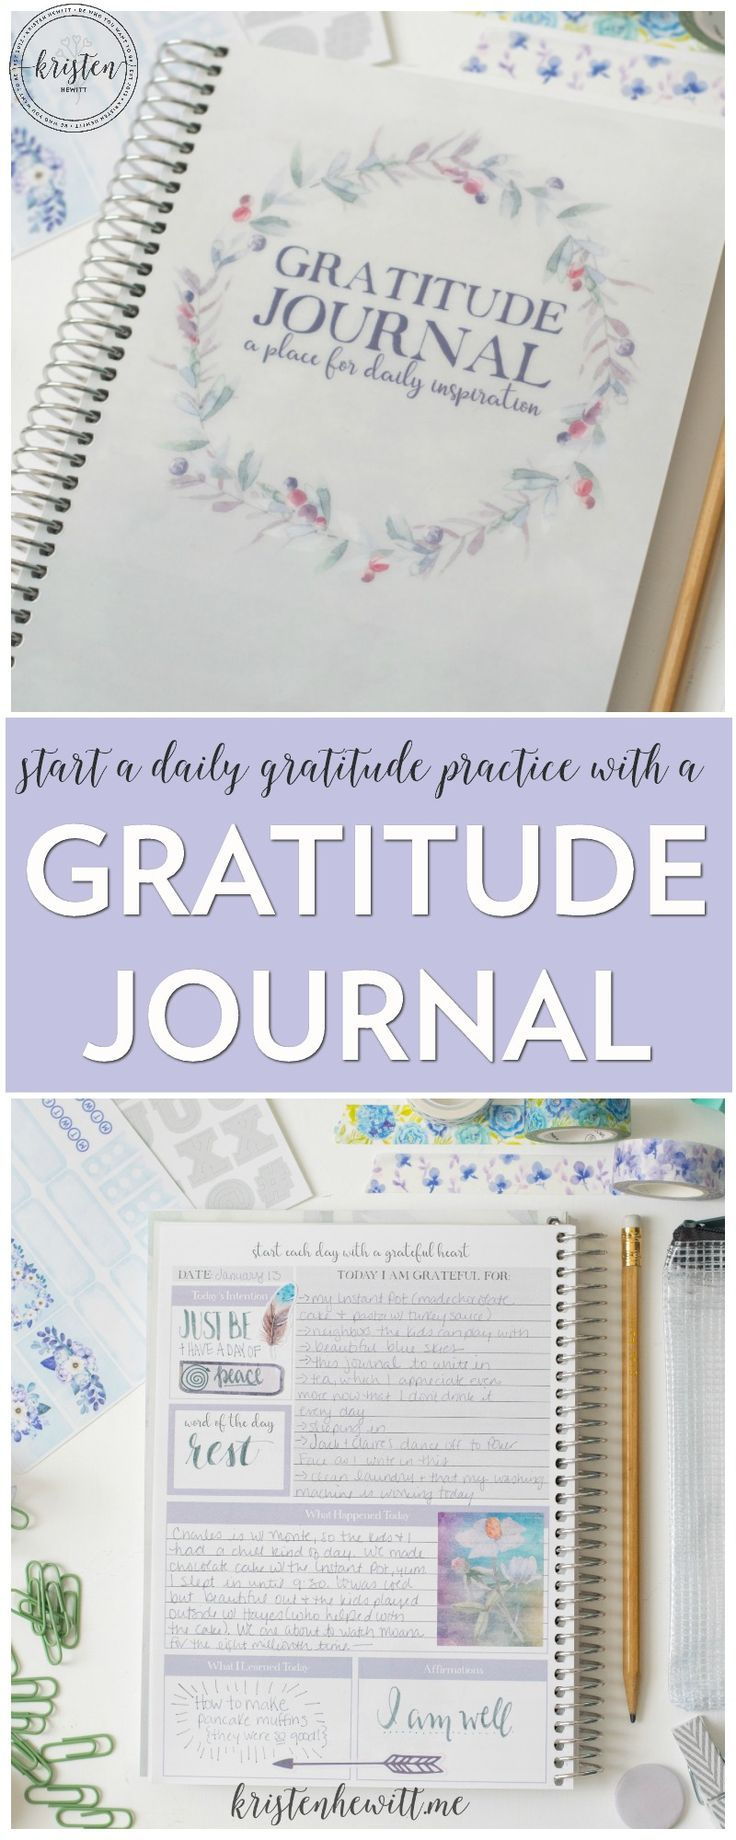 how to add more gratitude in your lide